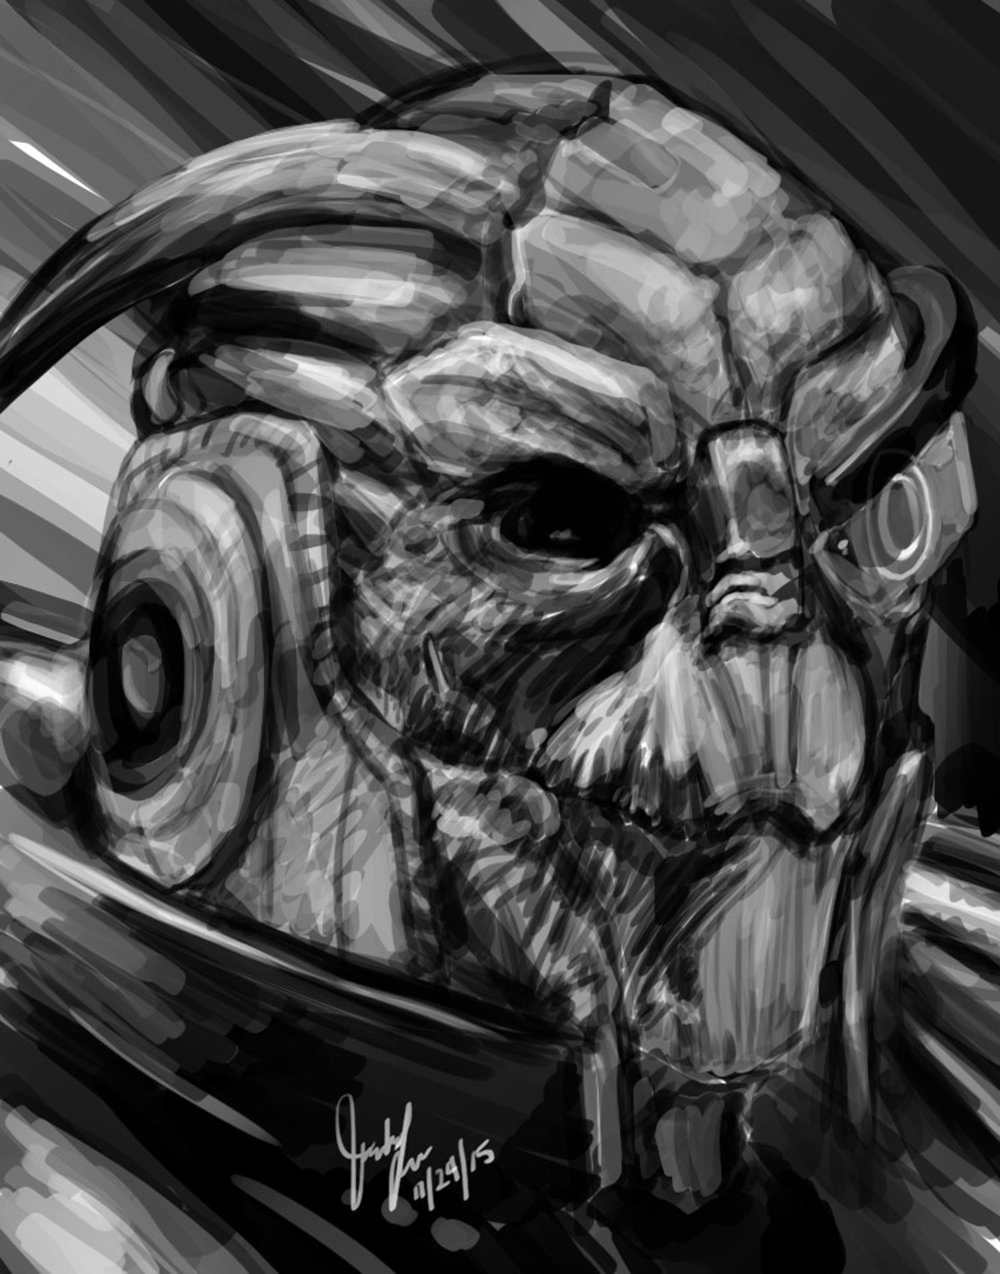 BIG garrus B&W portrait.jpg